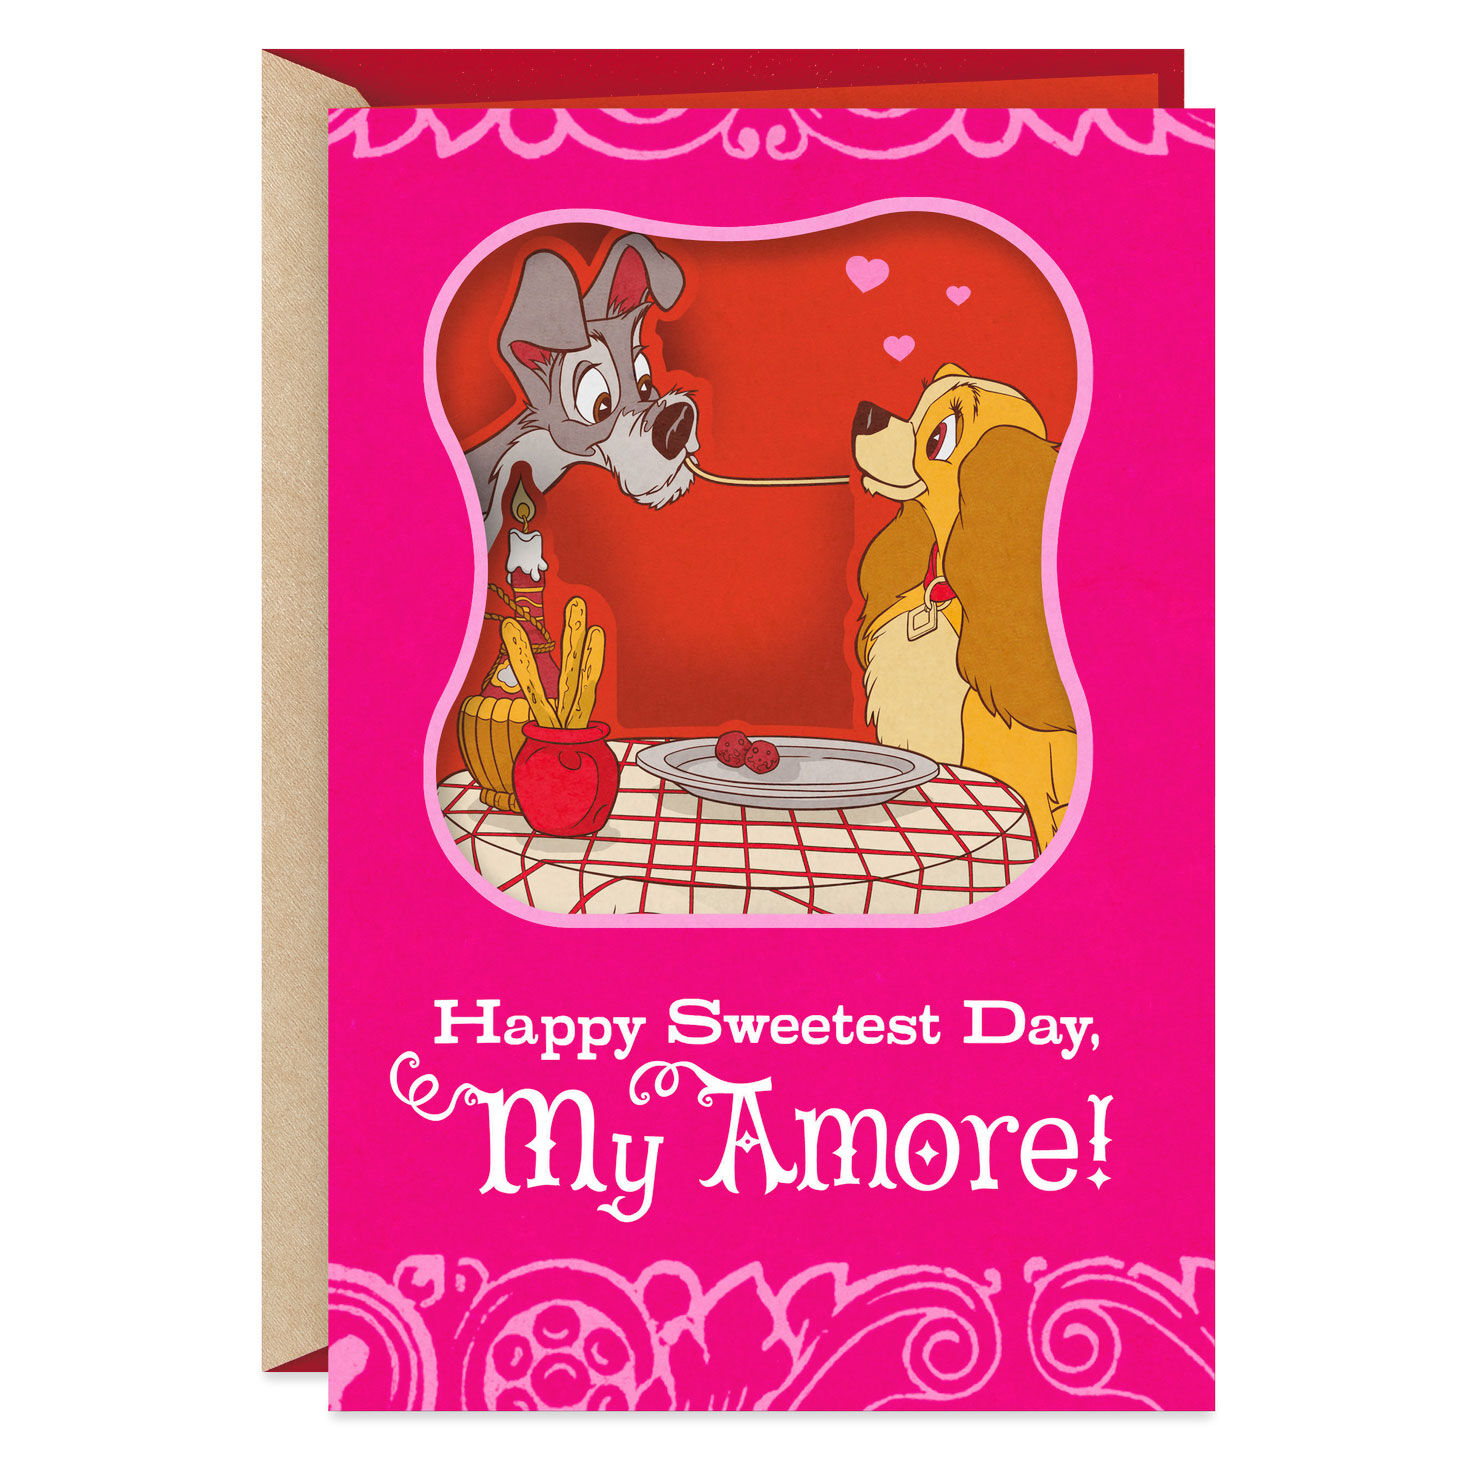 image regarding Sweetest Day Cards Printable titled Sweetest Working day Playing cards Hallmark